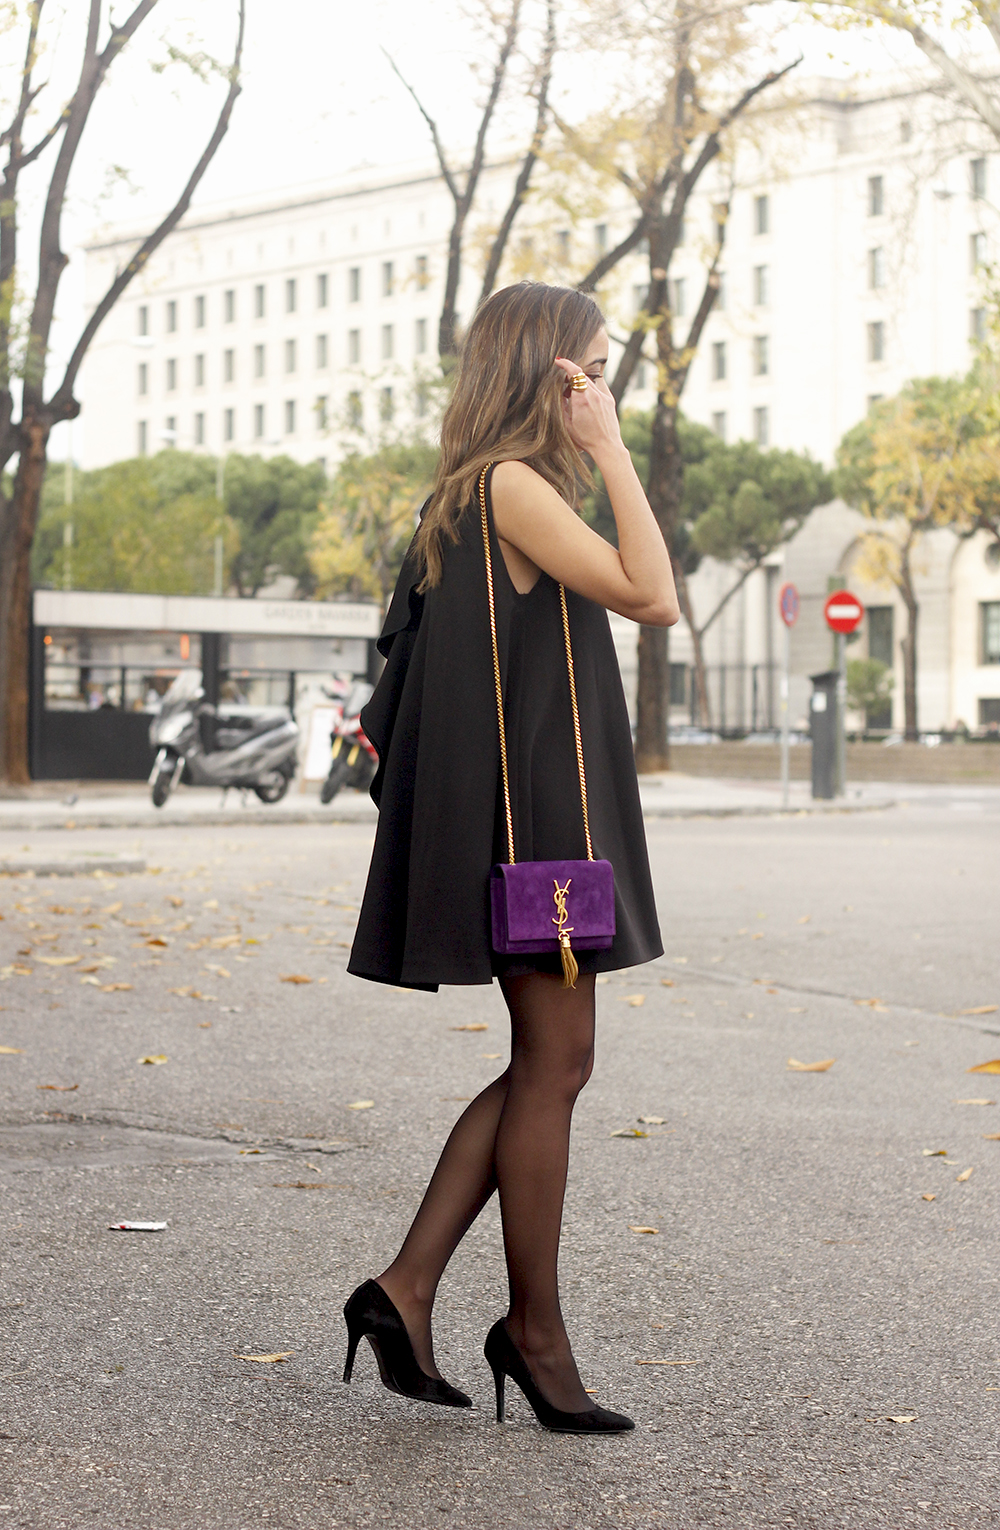 little black dress yves saint laurent bag accessories black heels outfit party look style05